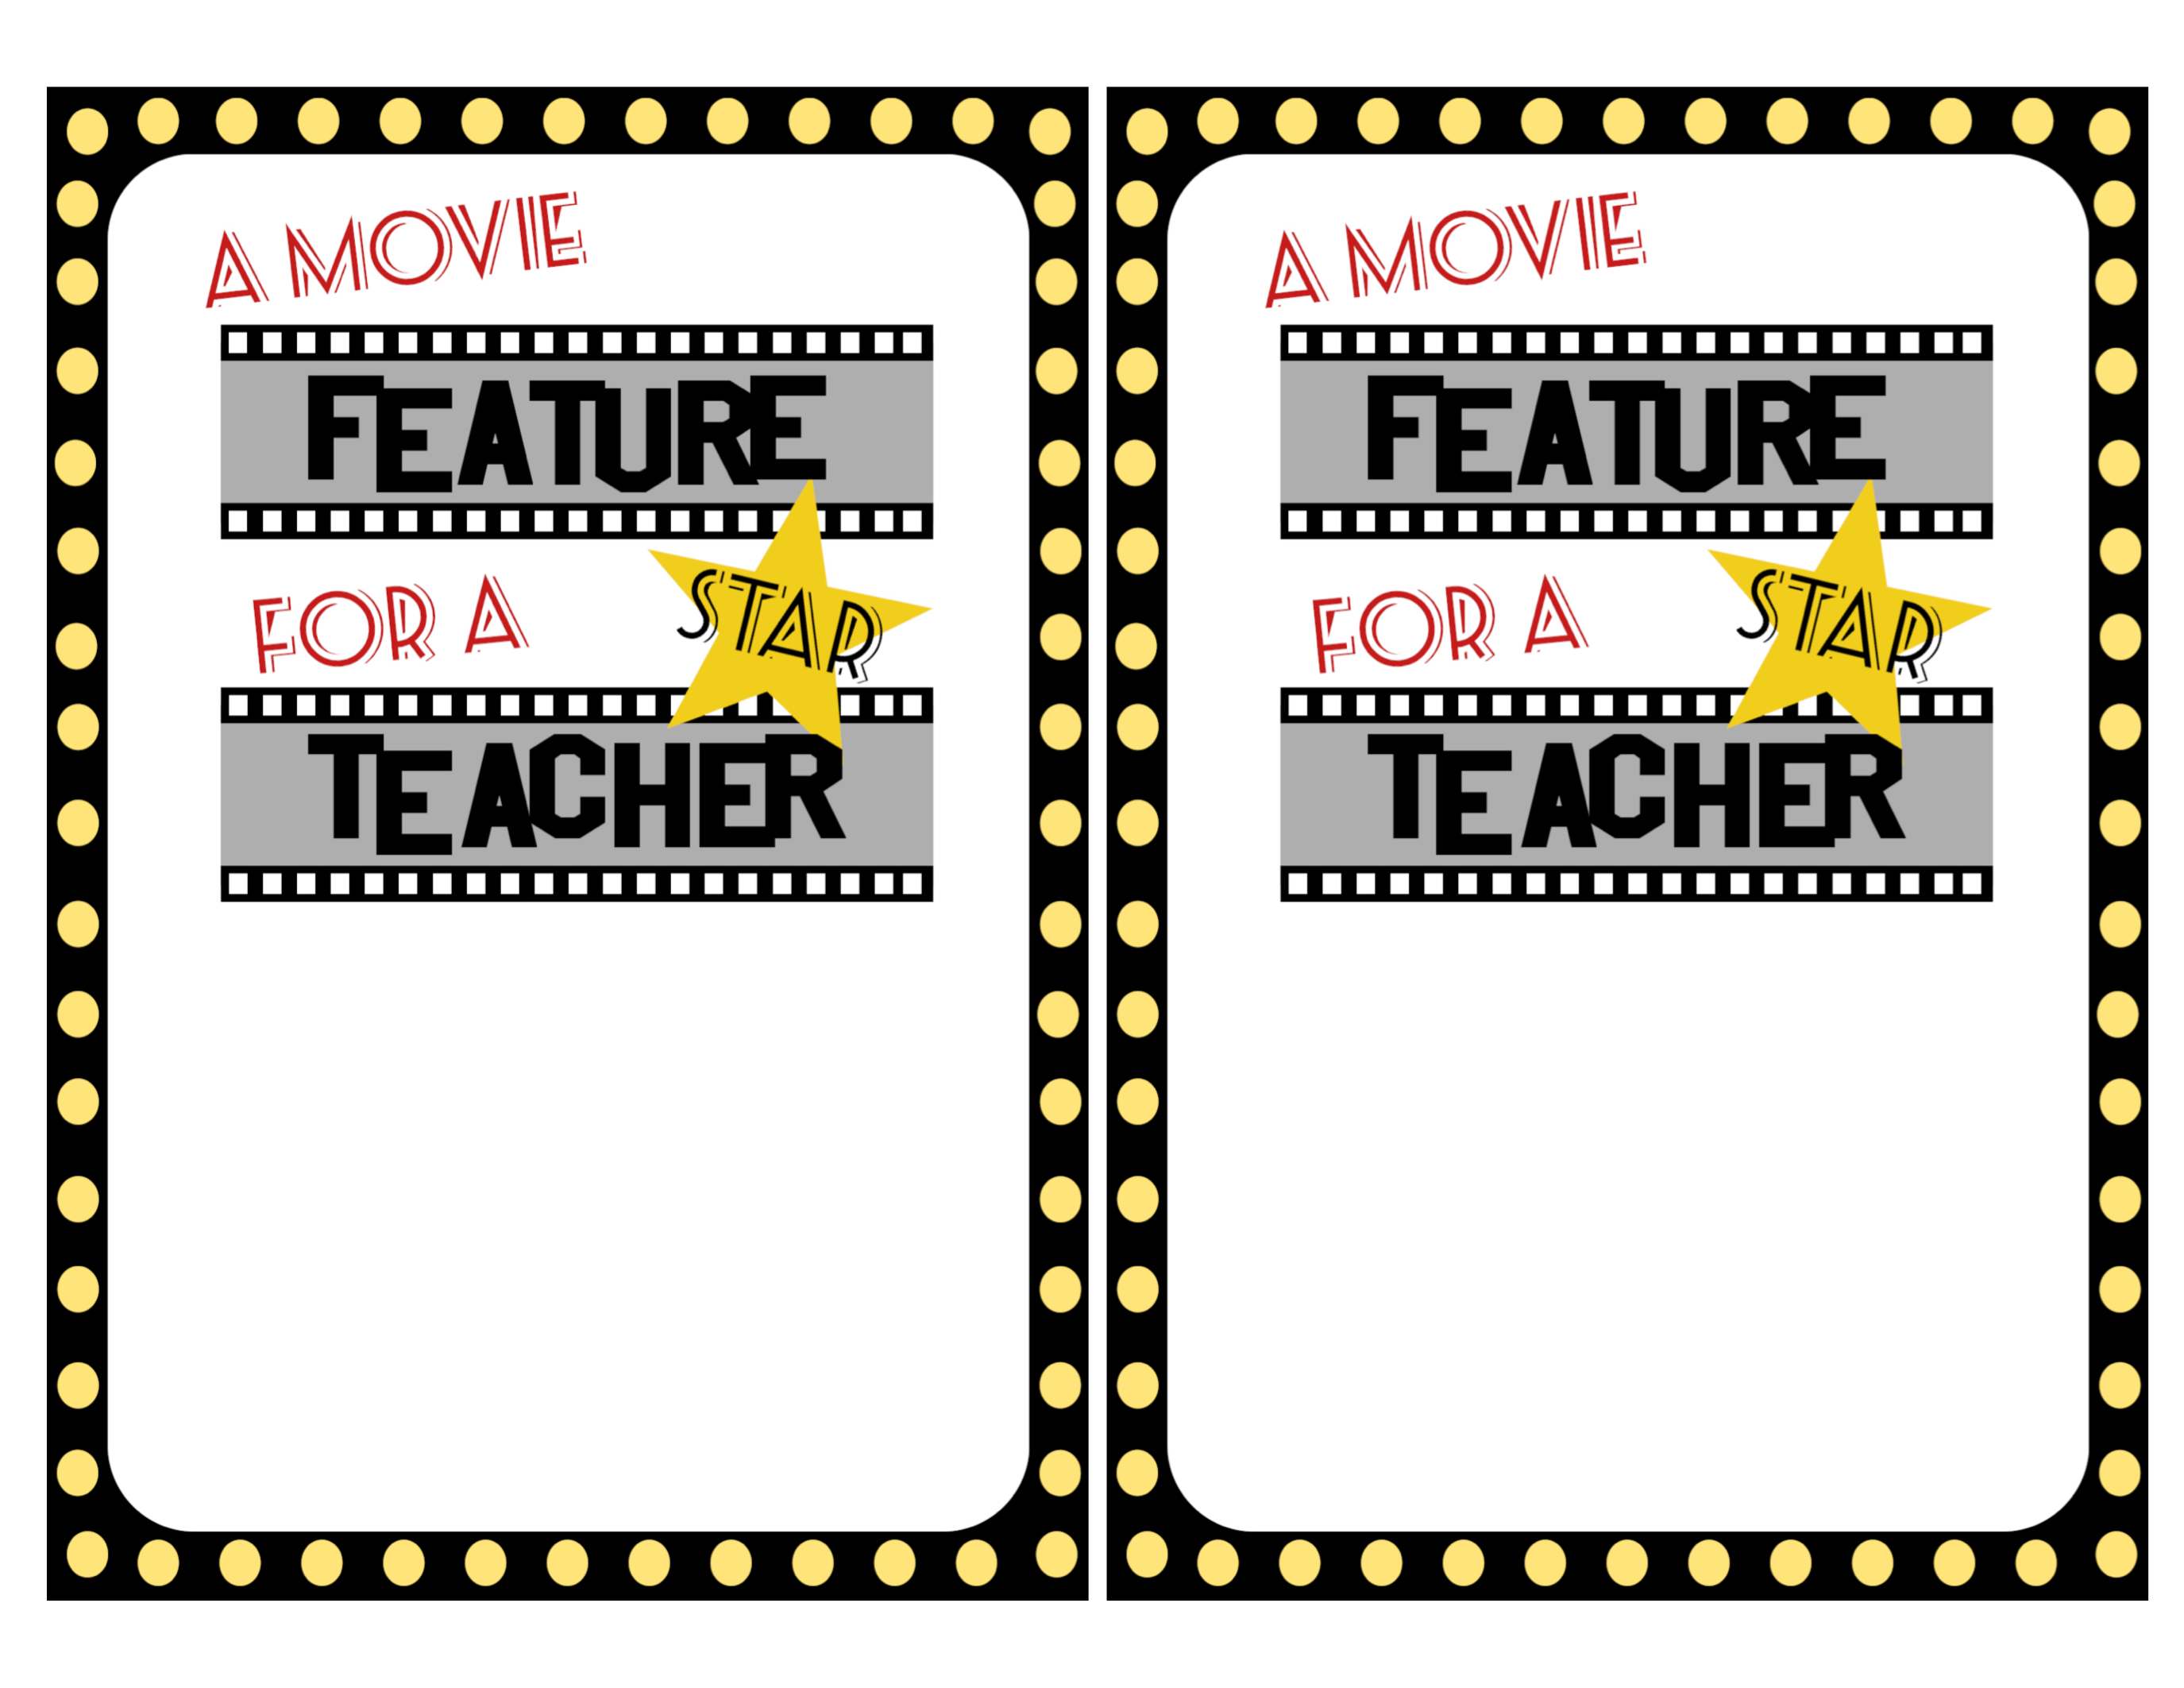 photo relating to Redbox Printable titled Simple Instructor Items Video Free of charge Printable - Paper Path Structure